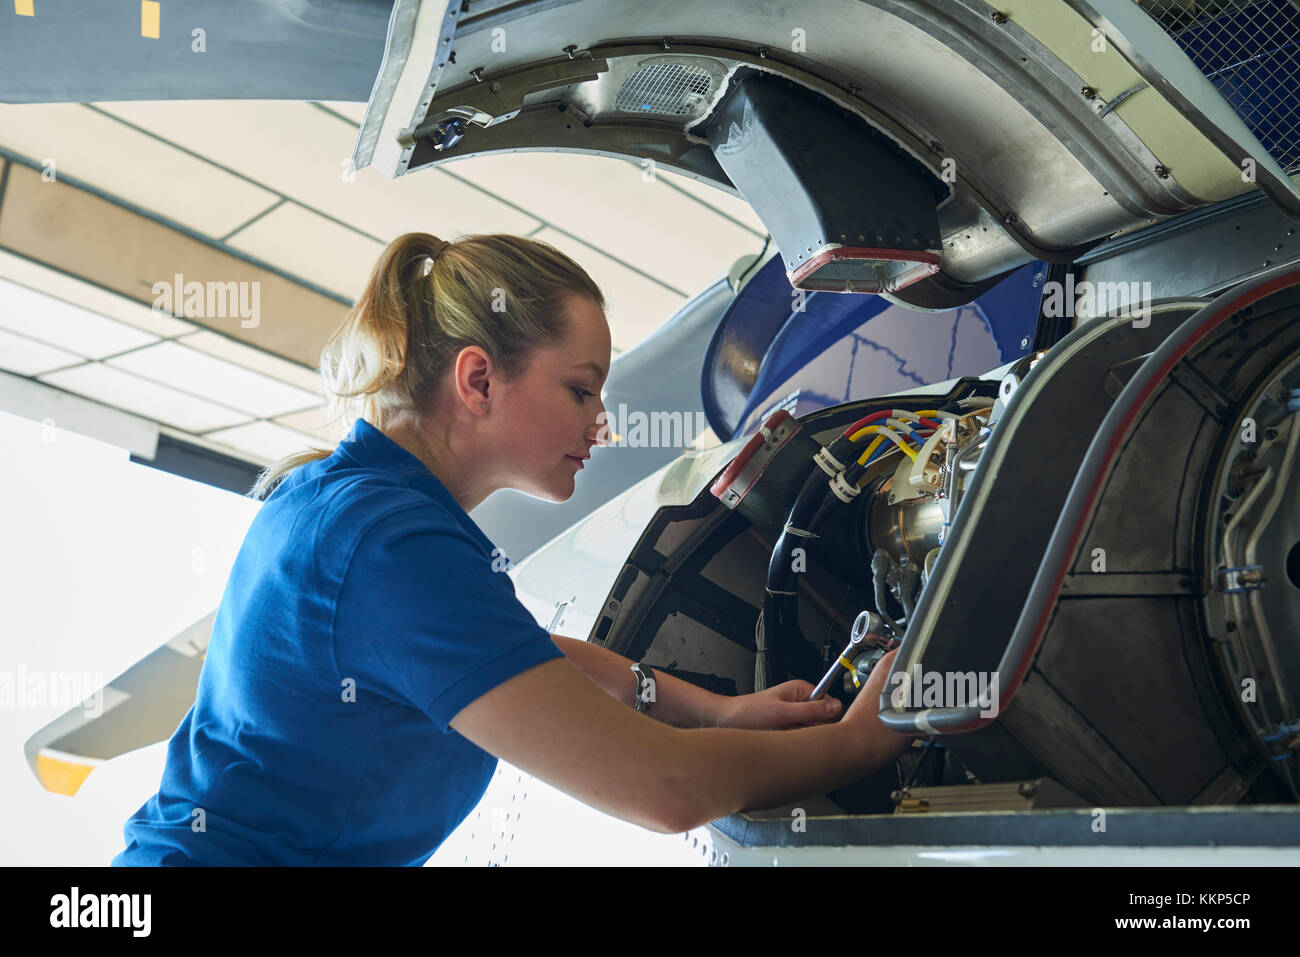 Female Aero Engineer Working On Helicopter In Hangar - Stock Image